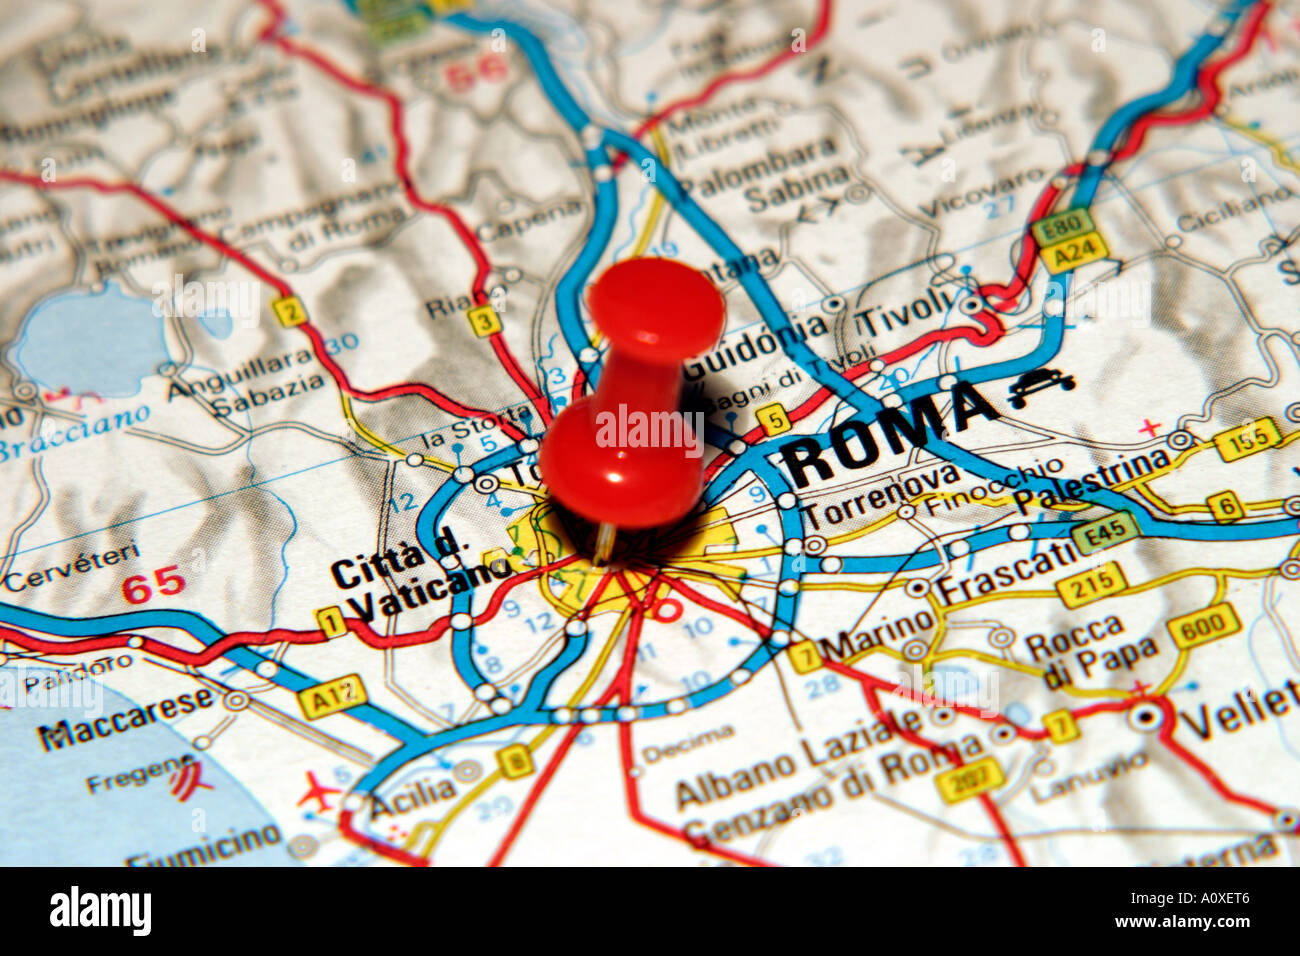 Map Pin Pointing To Rome Italy On A Road Map Stock Photo